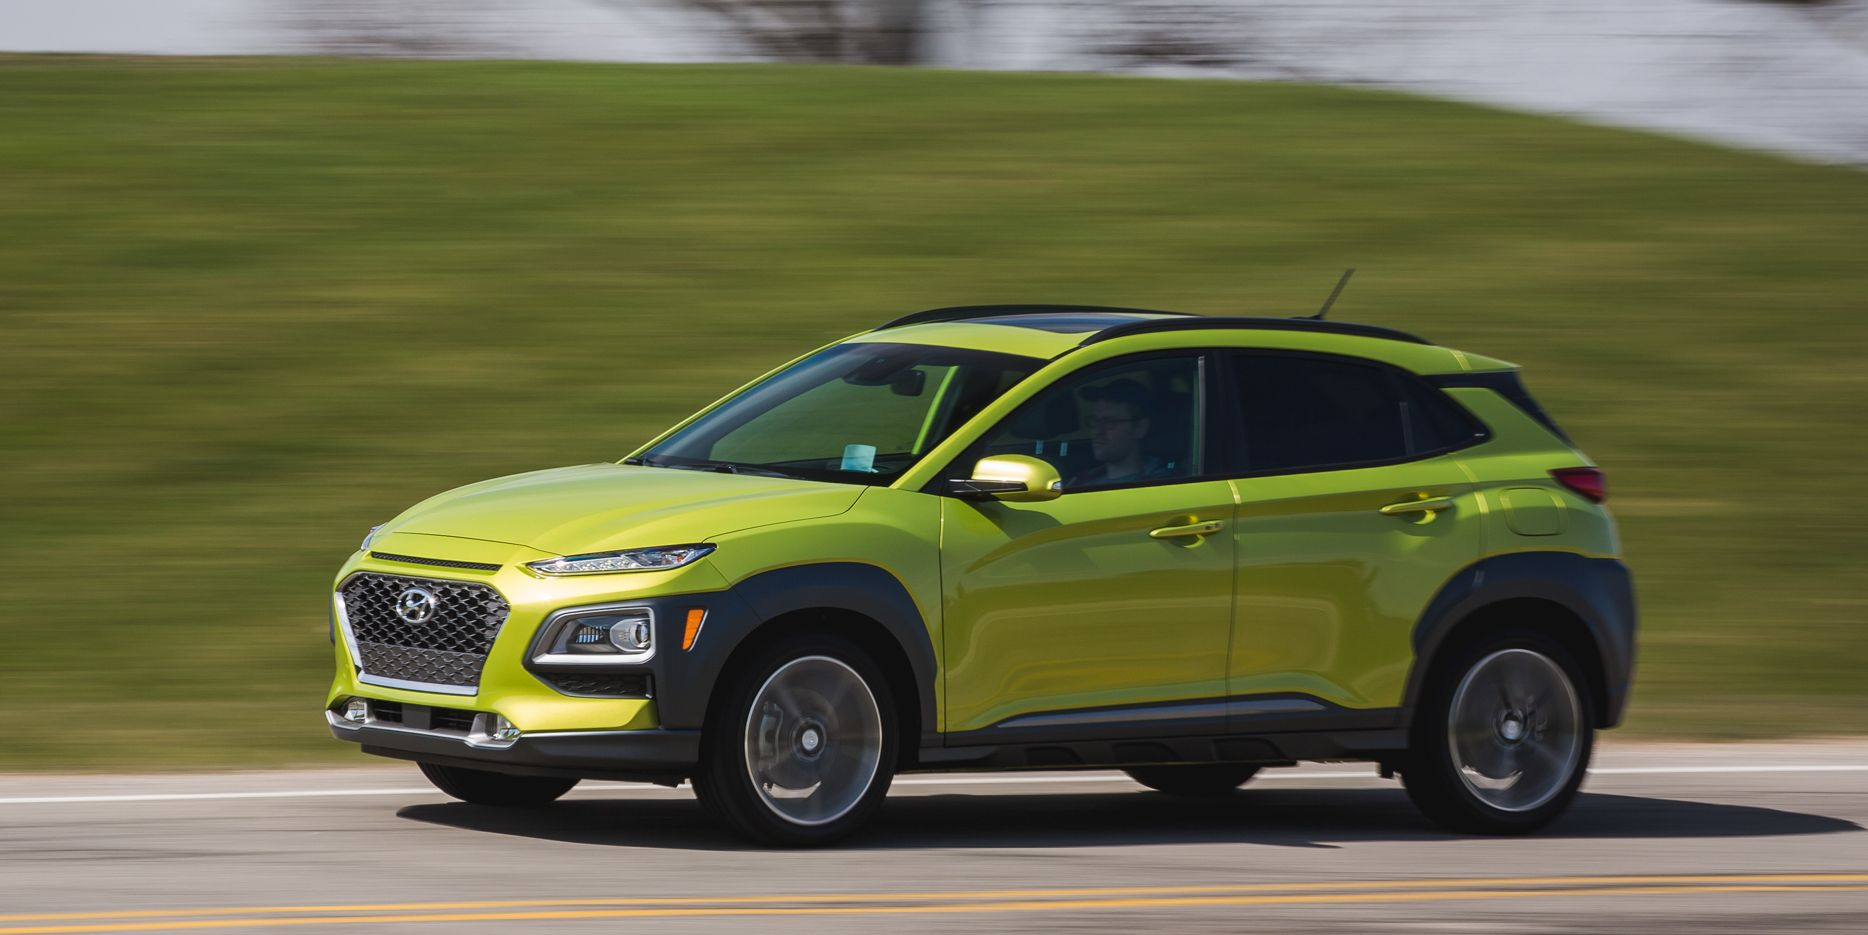 The 2018 Hyundai Kona Turbo Punches Hard for Its Class